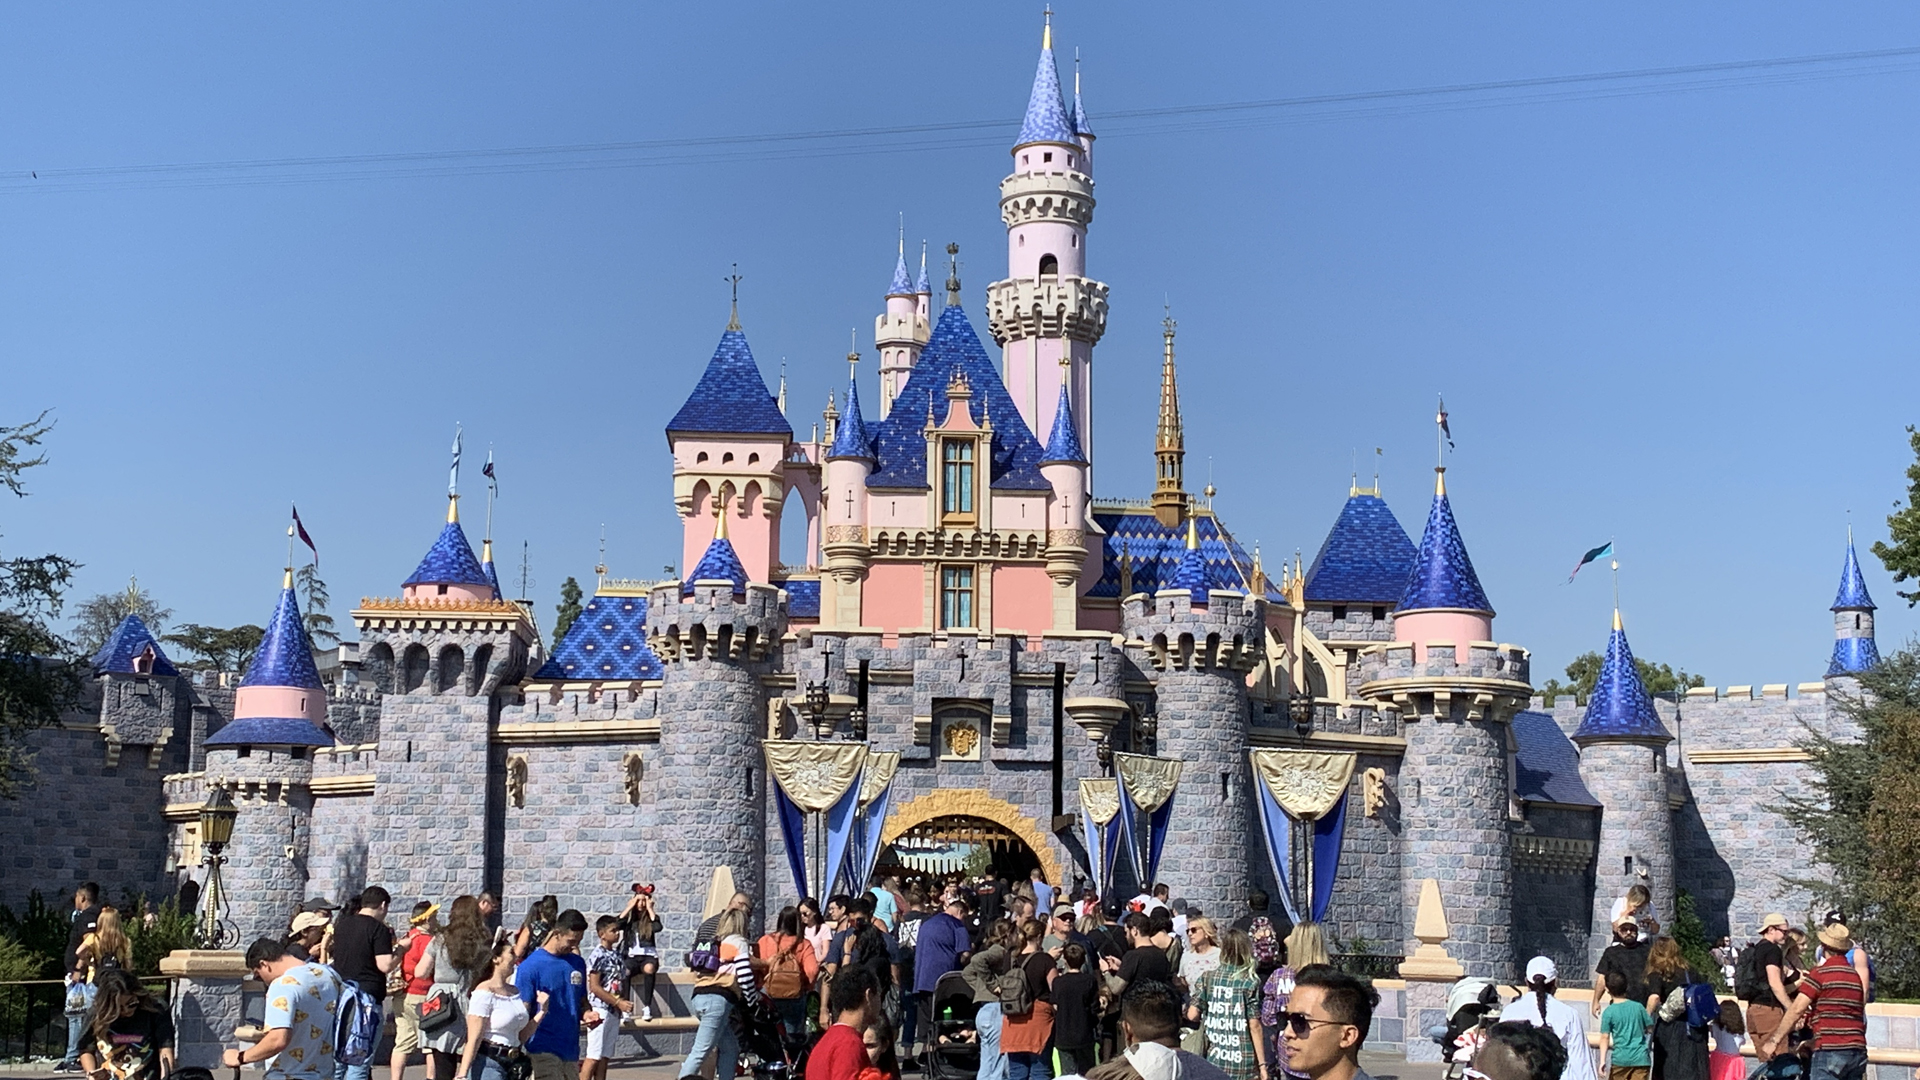 The Sleeping Beauty castle is seen at Disneyland on Oct. 14, 2019. (KTLA)